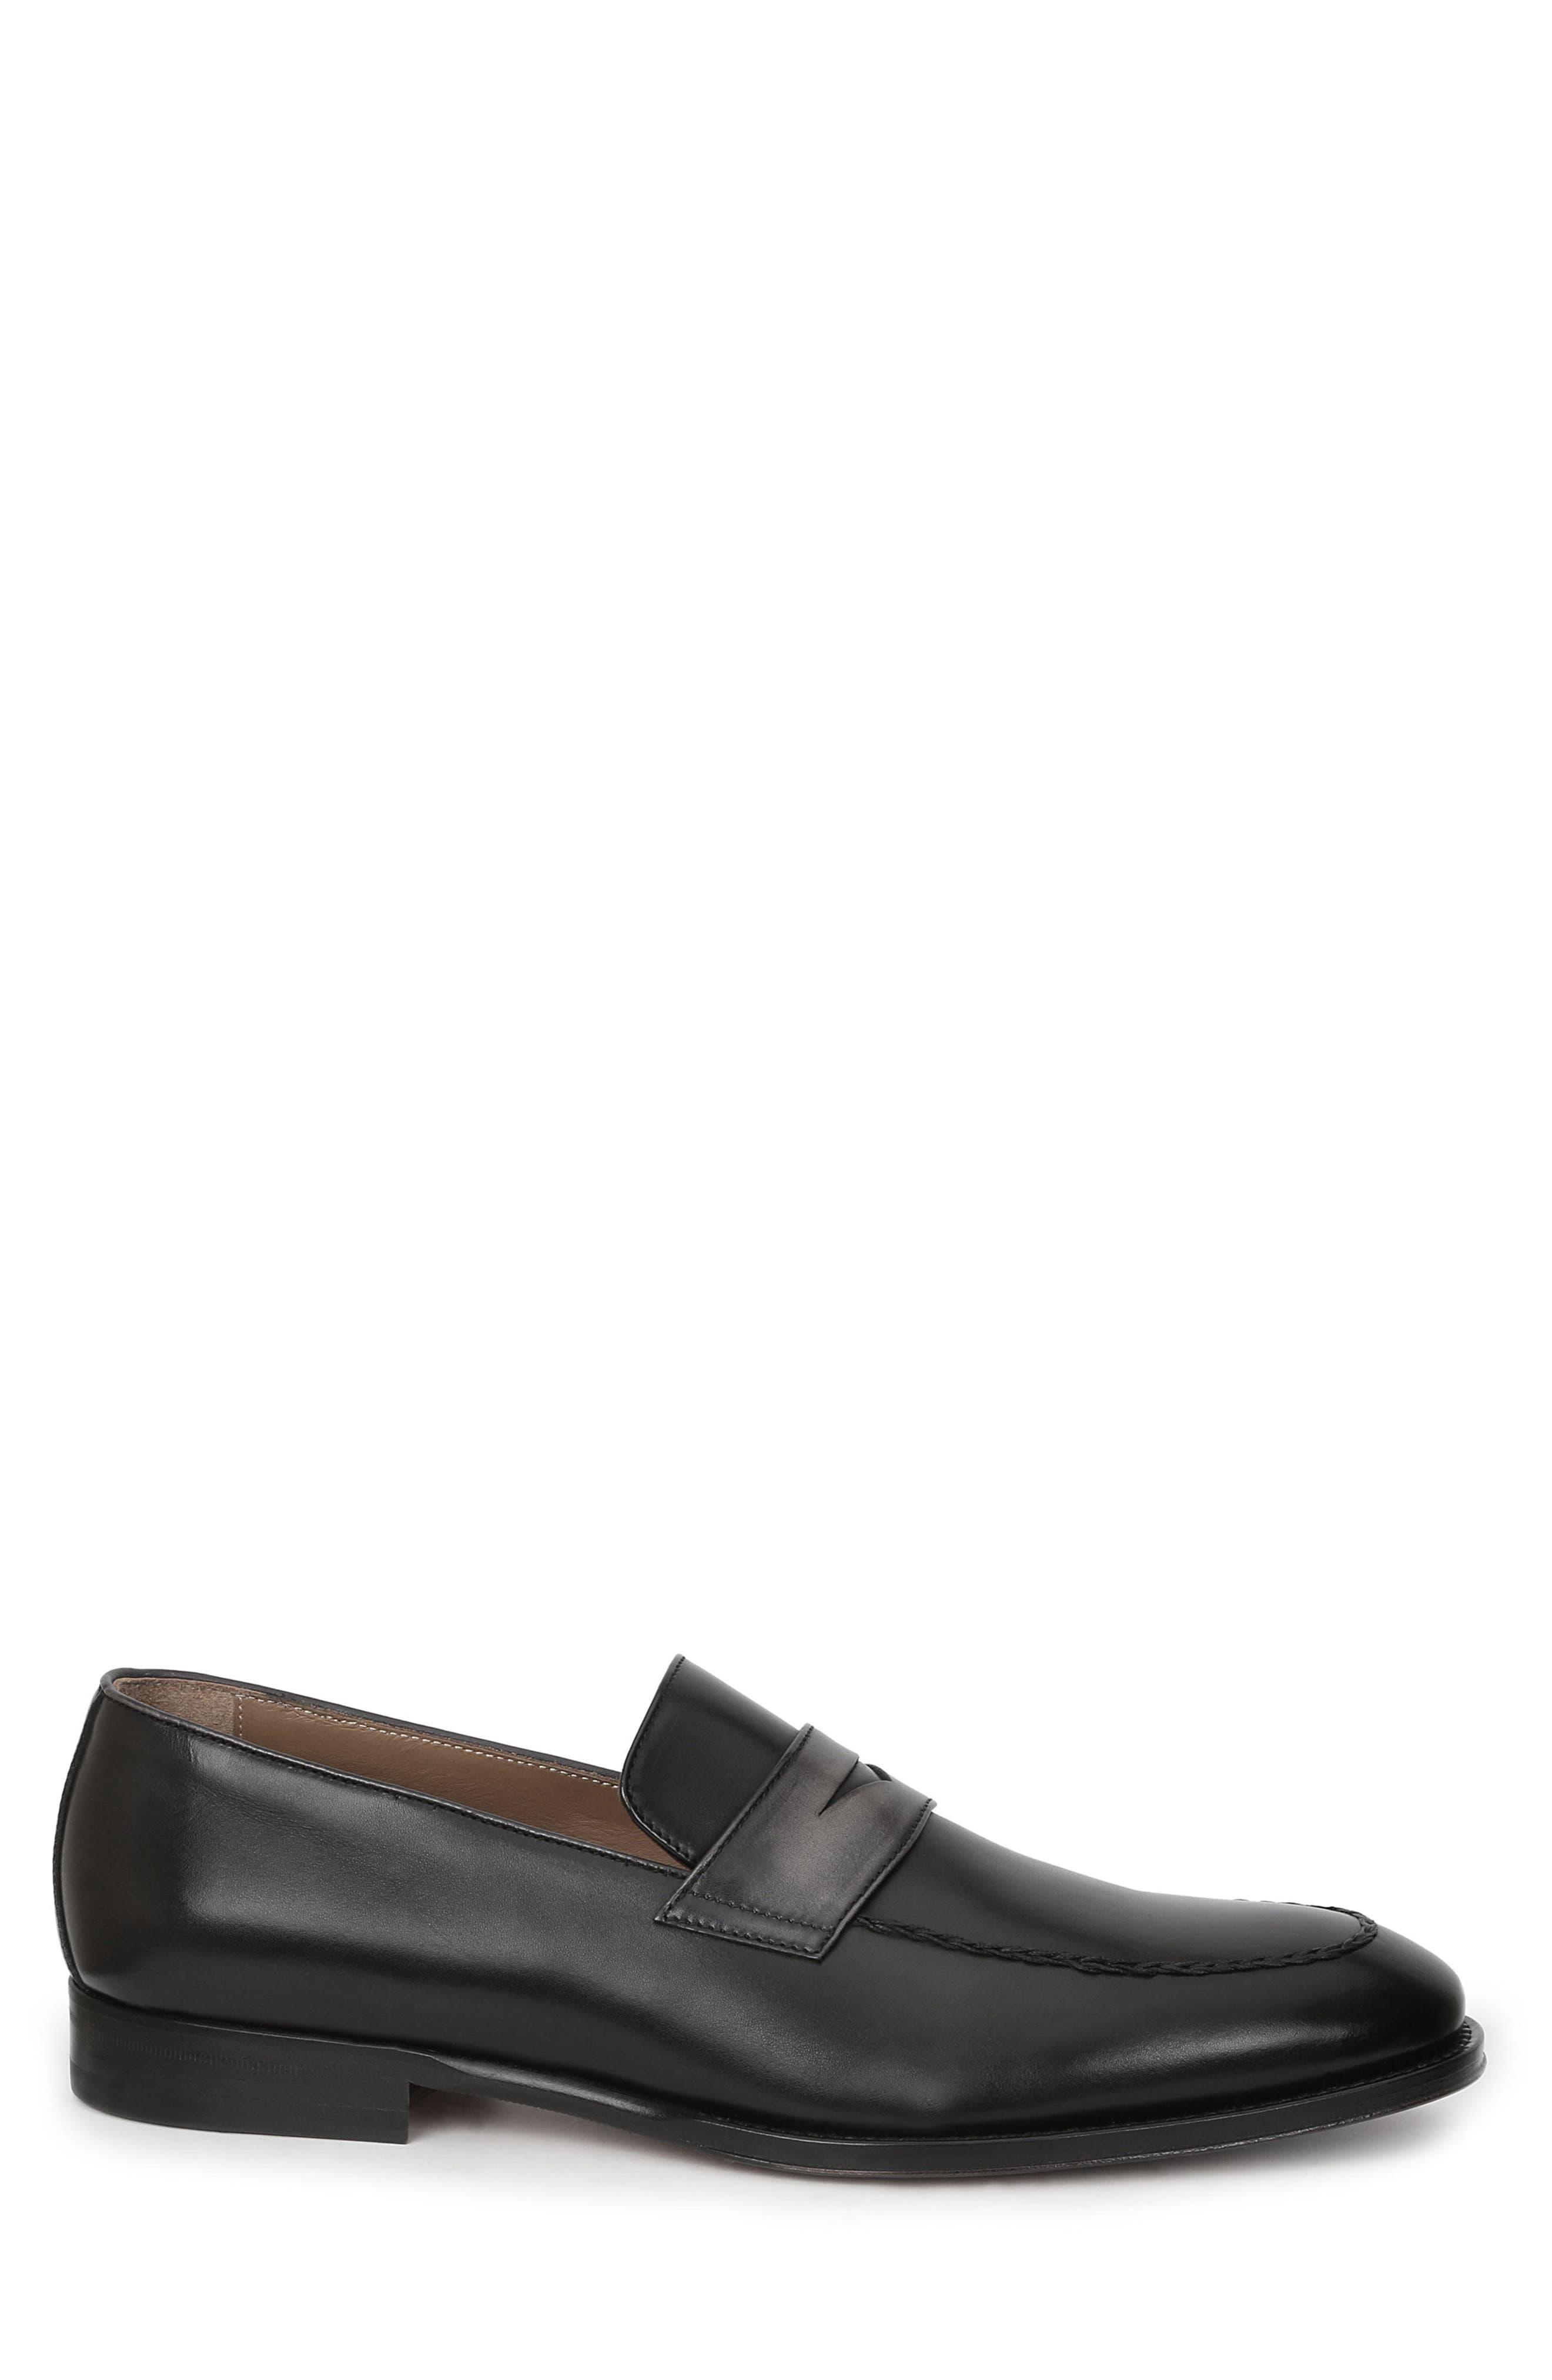 Alternate Image 3  - Bruno Magli Fanetta Penny Loafer (Men)